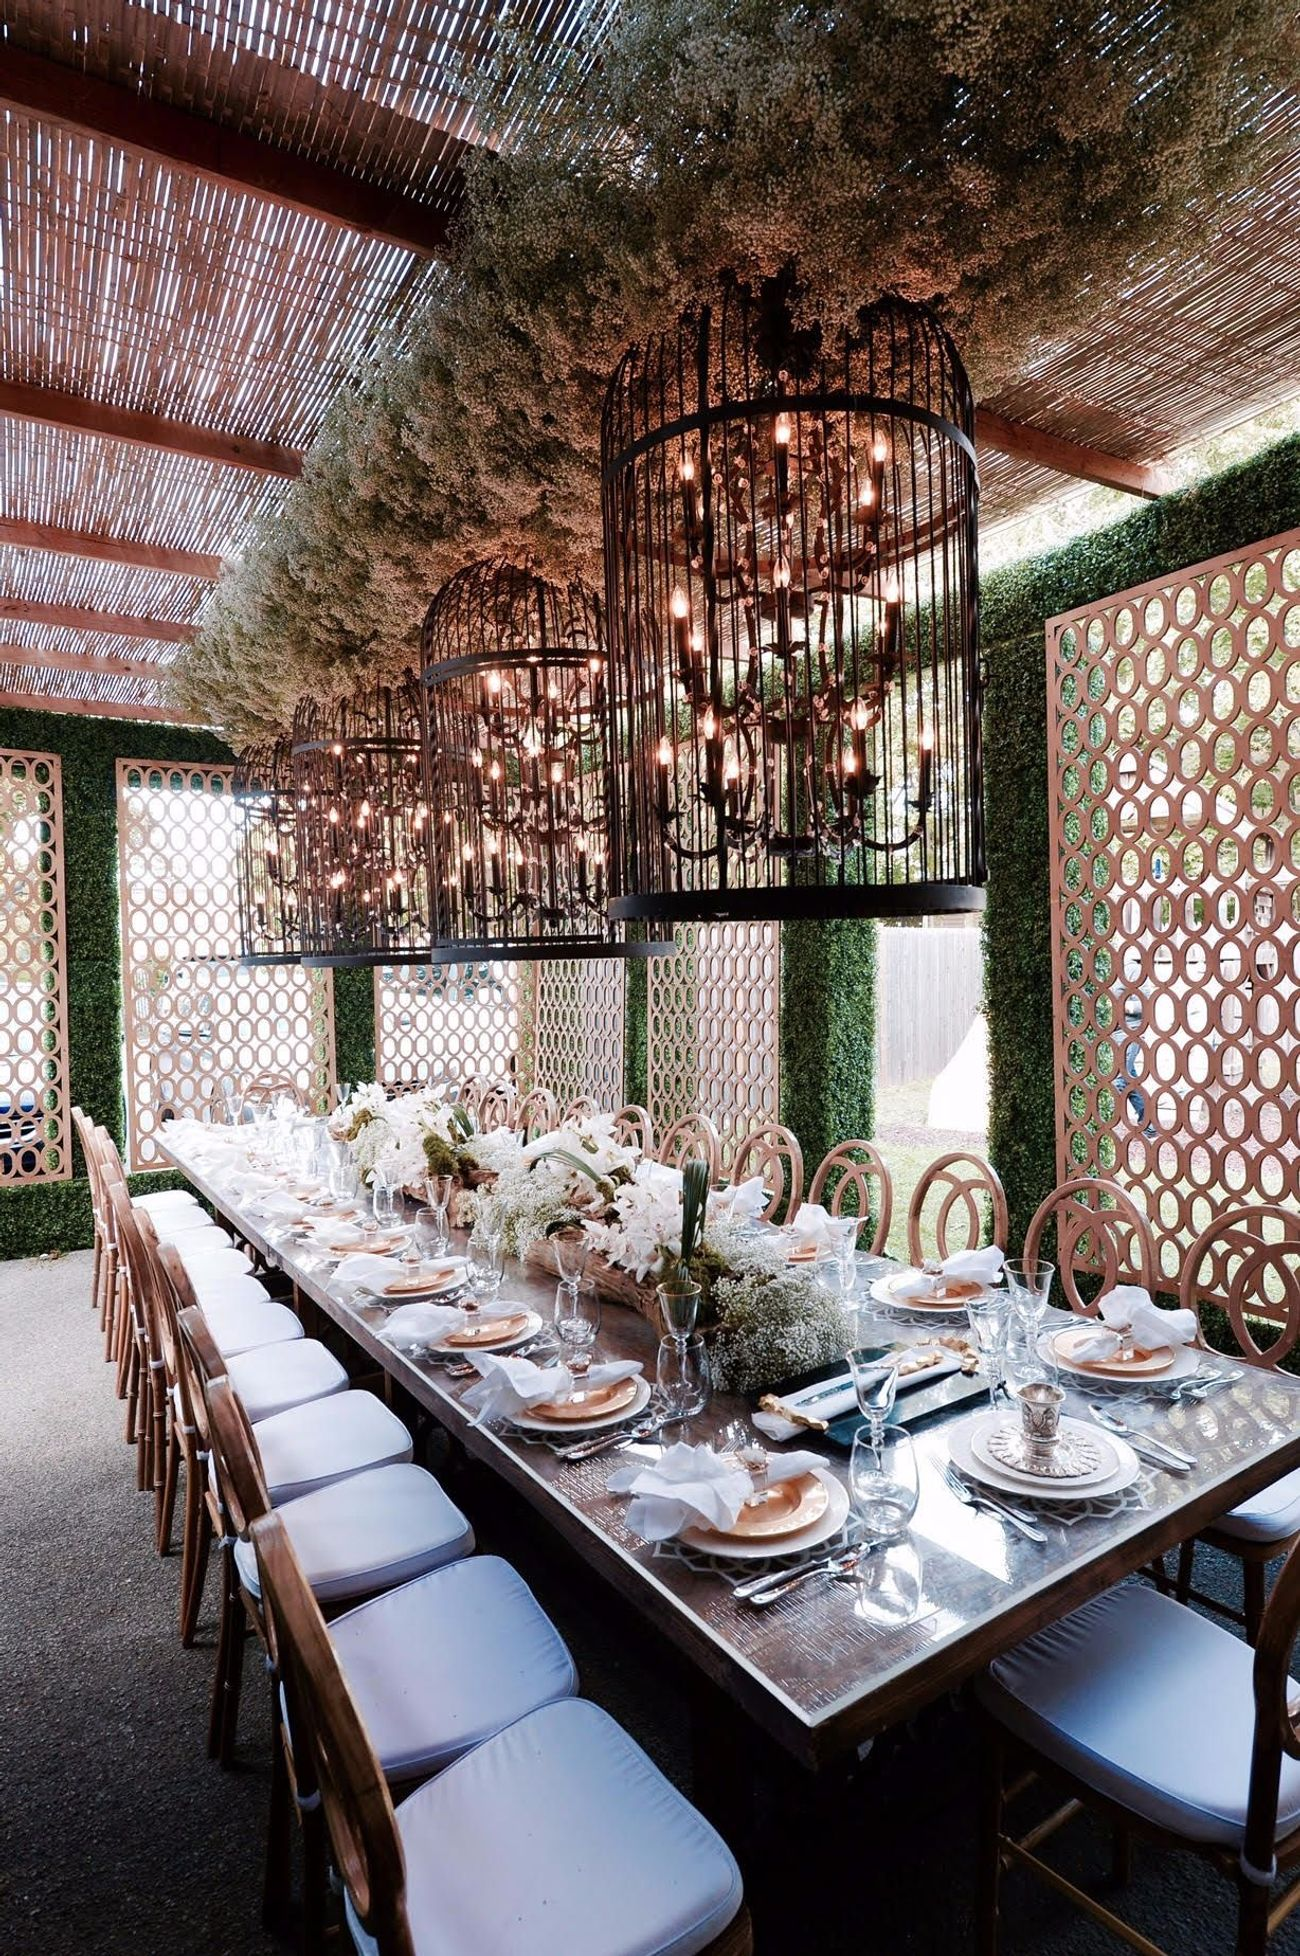 The Sukkah Goes From Deluxe To Ultra-Luxe: Flowers, Lattice, Cashmere — And $10,000 Price-Tag